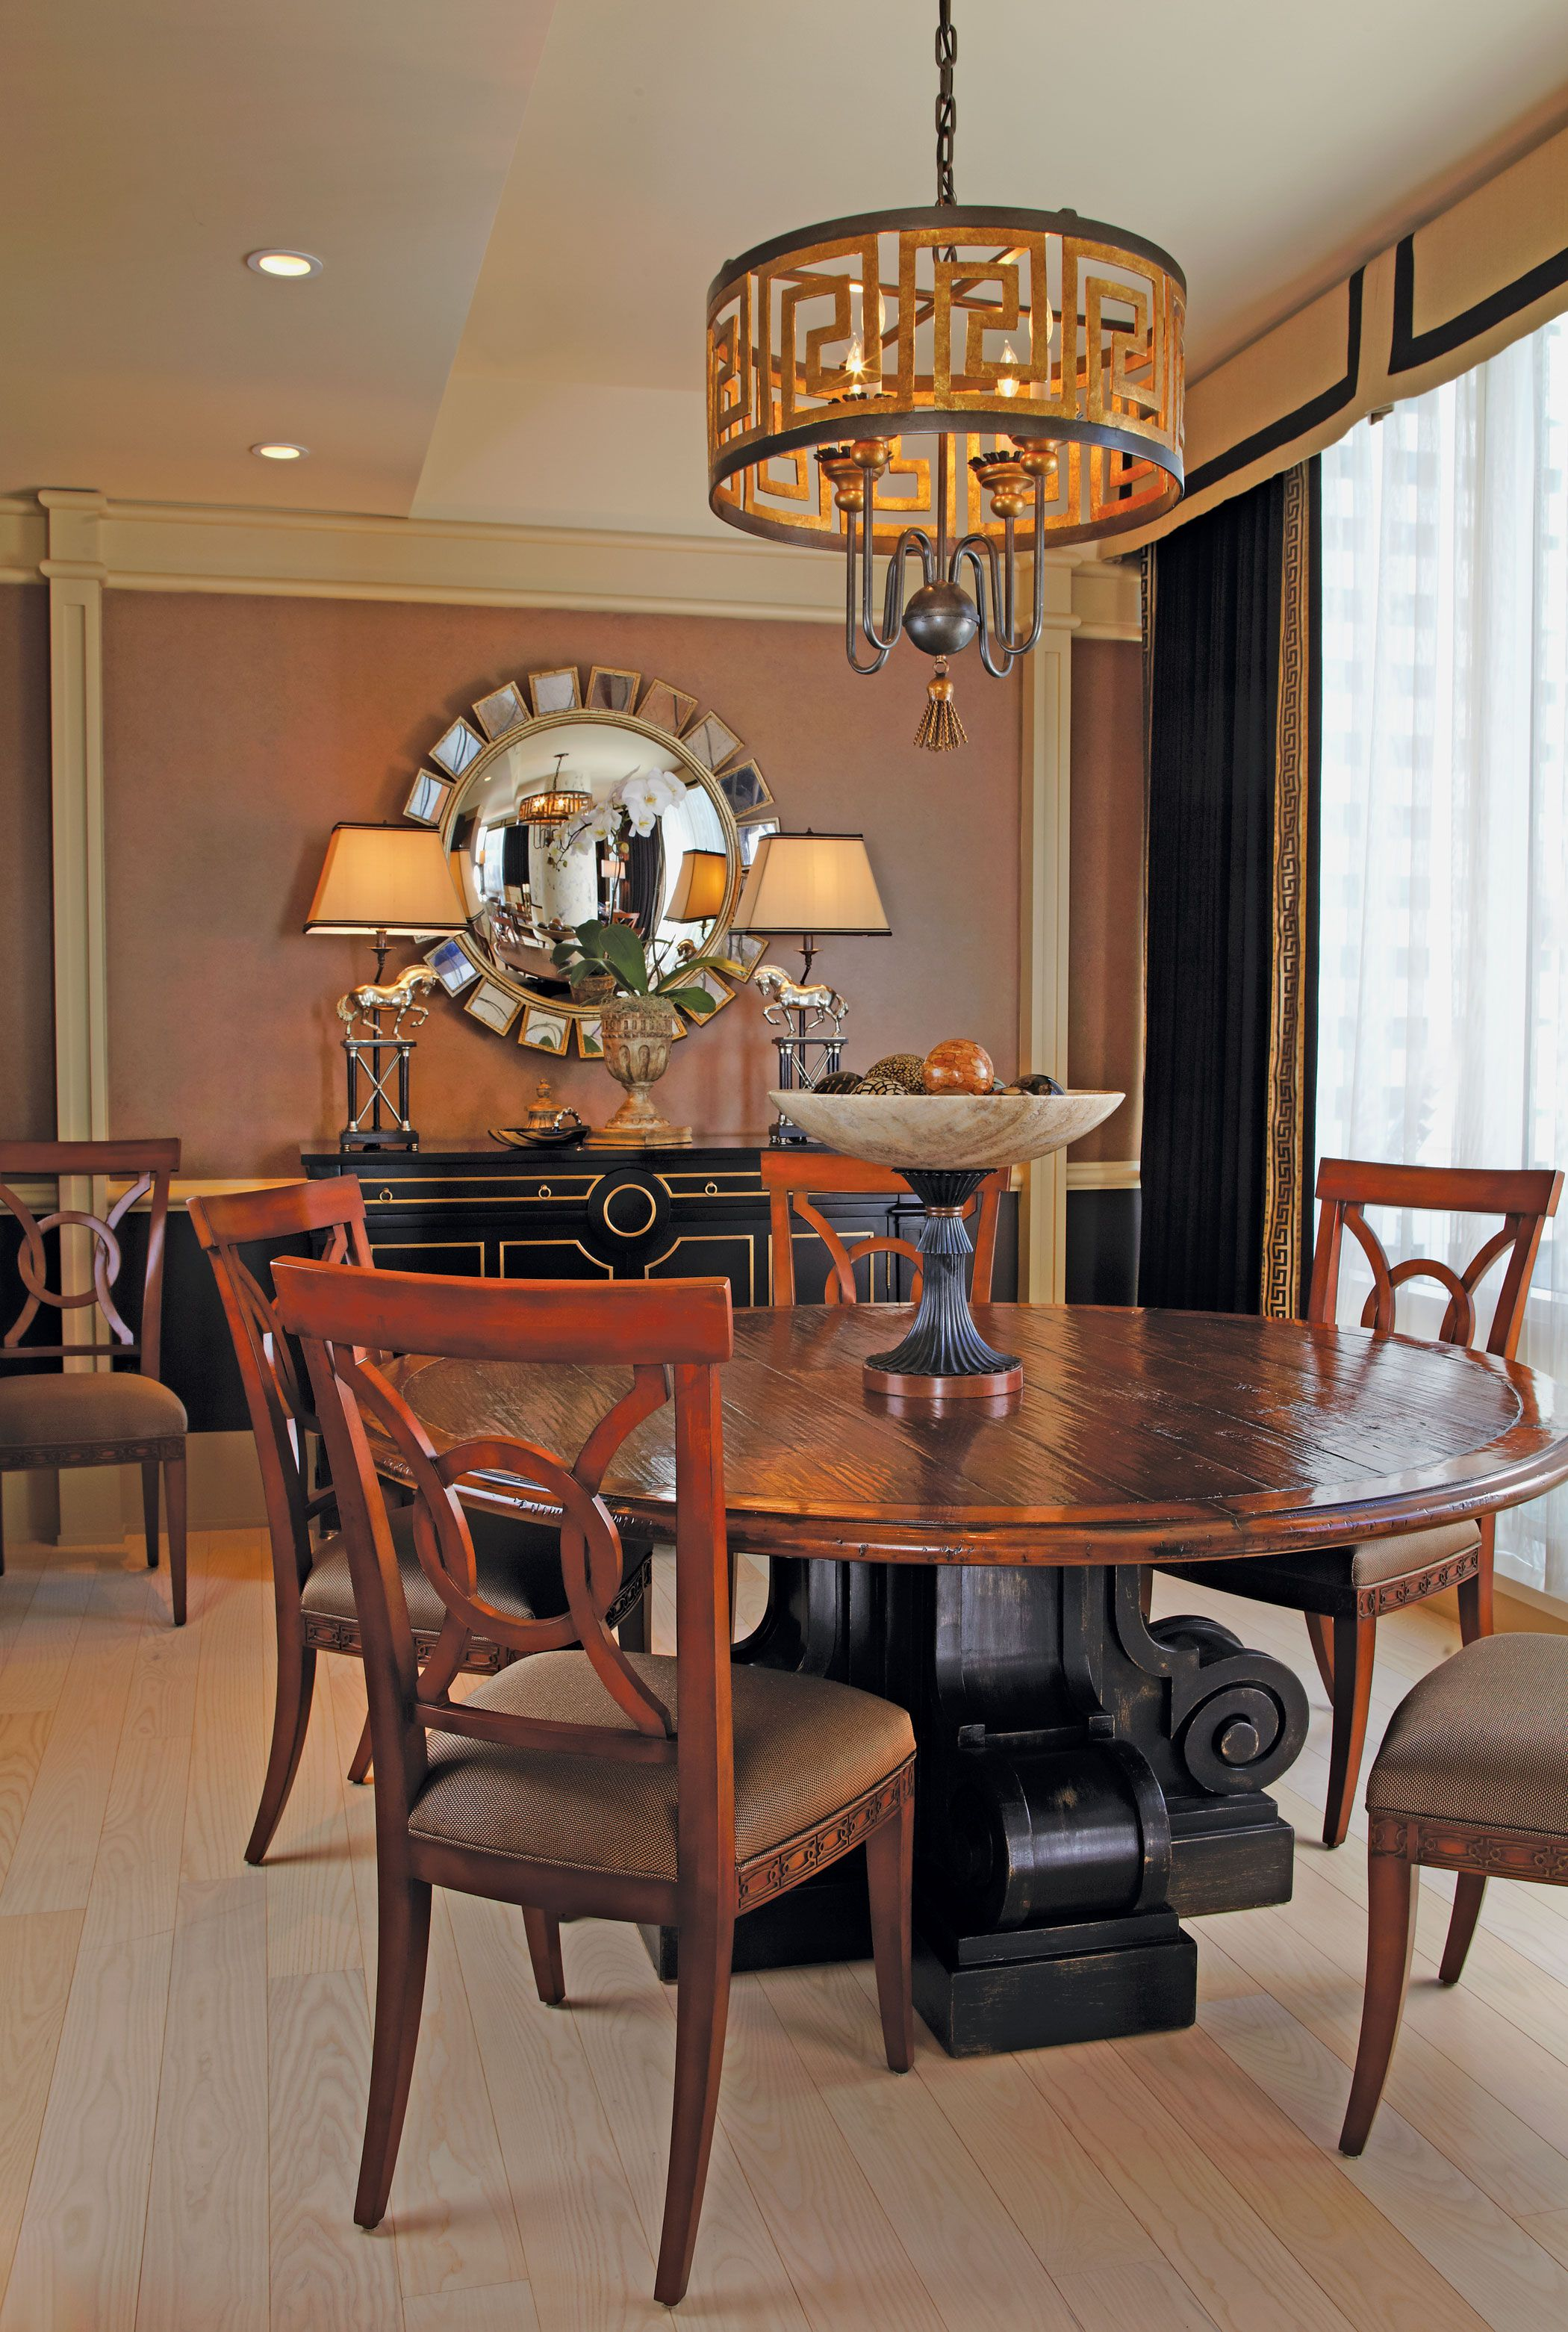 Exclusive modern classic interior design in home striking dining room with circular table millennium tower san francisco also astonishing rh za pinterest